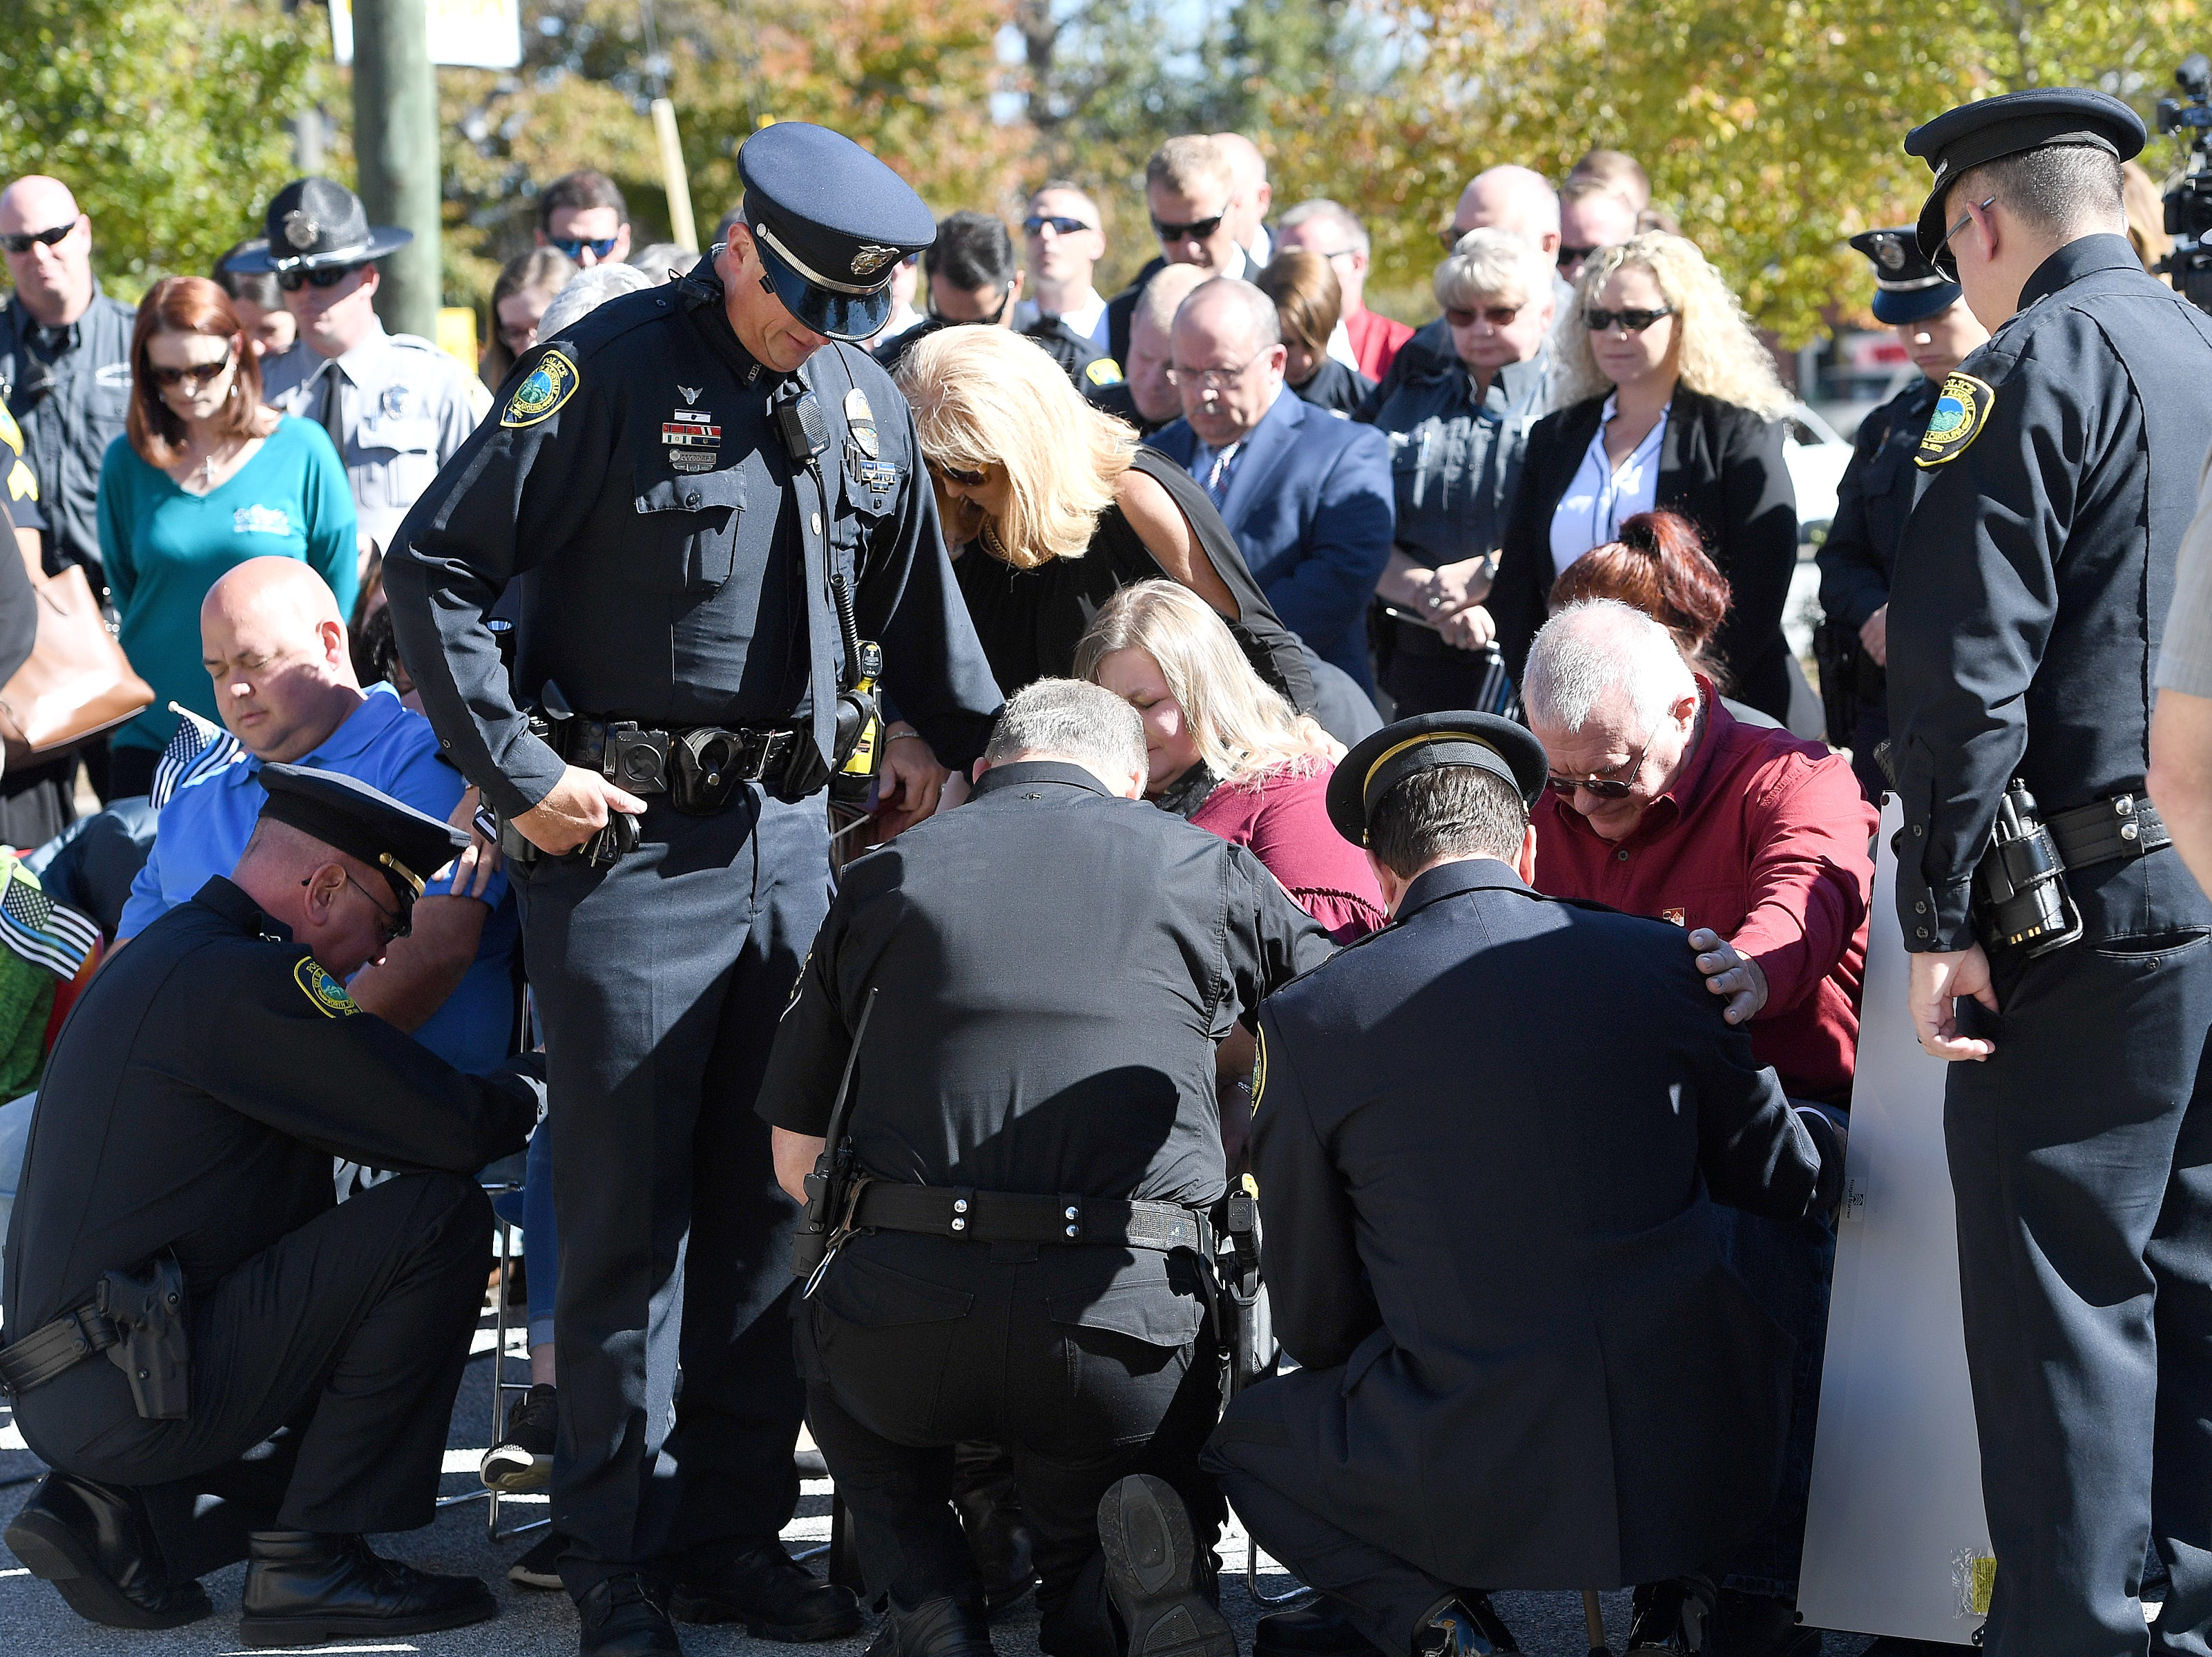 Attendees surround the family of Robert Bingaman for five minutes of silence honoring the five-year-anniversary of the Asheville police officer's death during a ceremony to dedicate a portion of Old Haywood Road to Bingaman at the Traffic Safety Office on Oct. 29, 2018. A call was placed on the police scanner asking on-duty officers for a moment of silence as well.